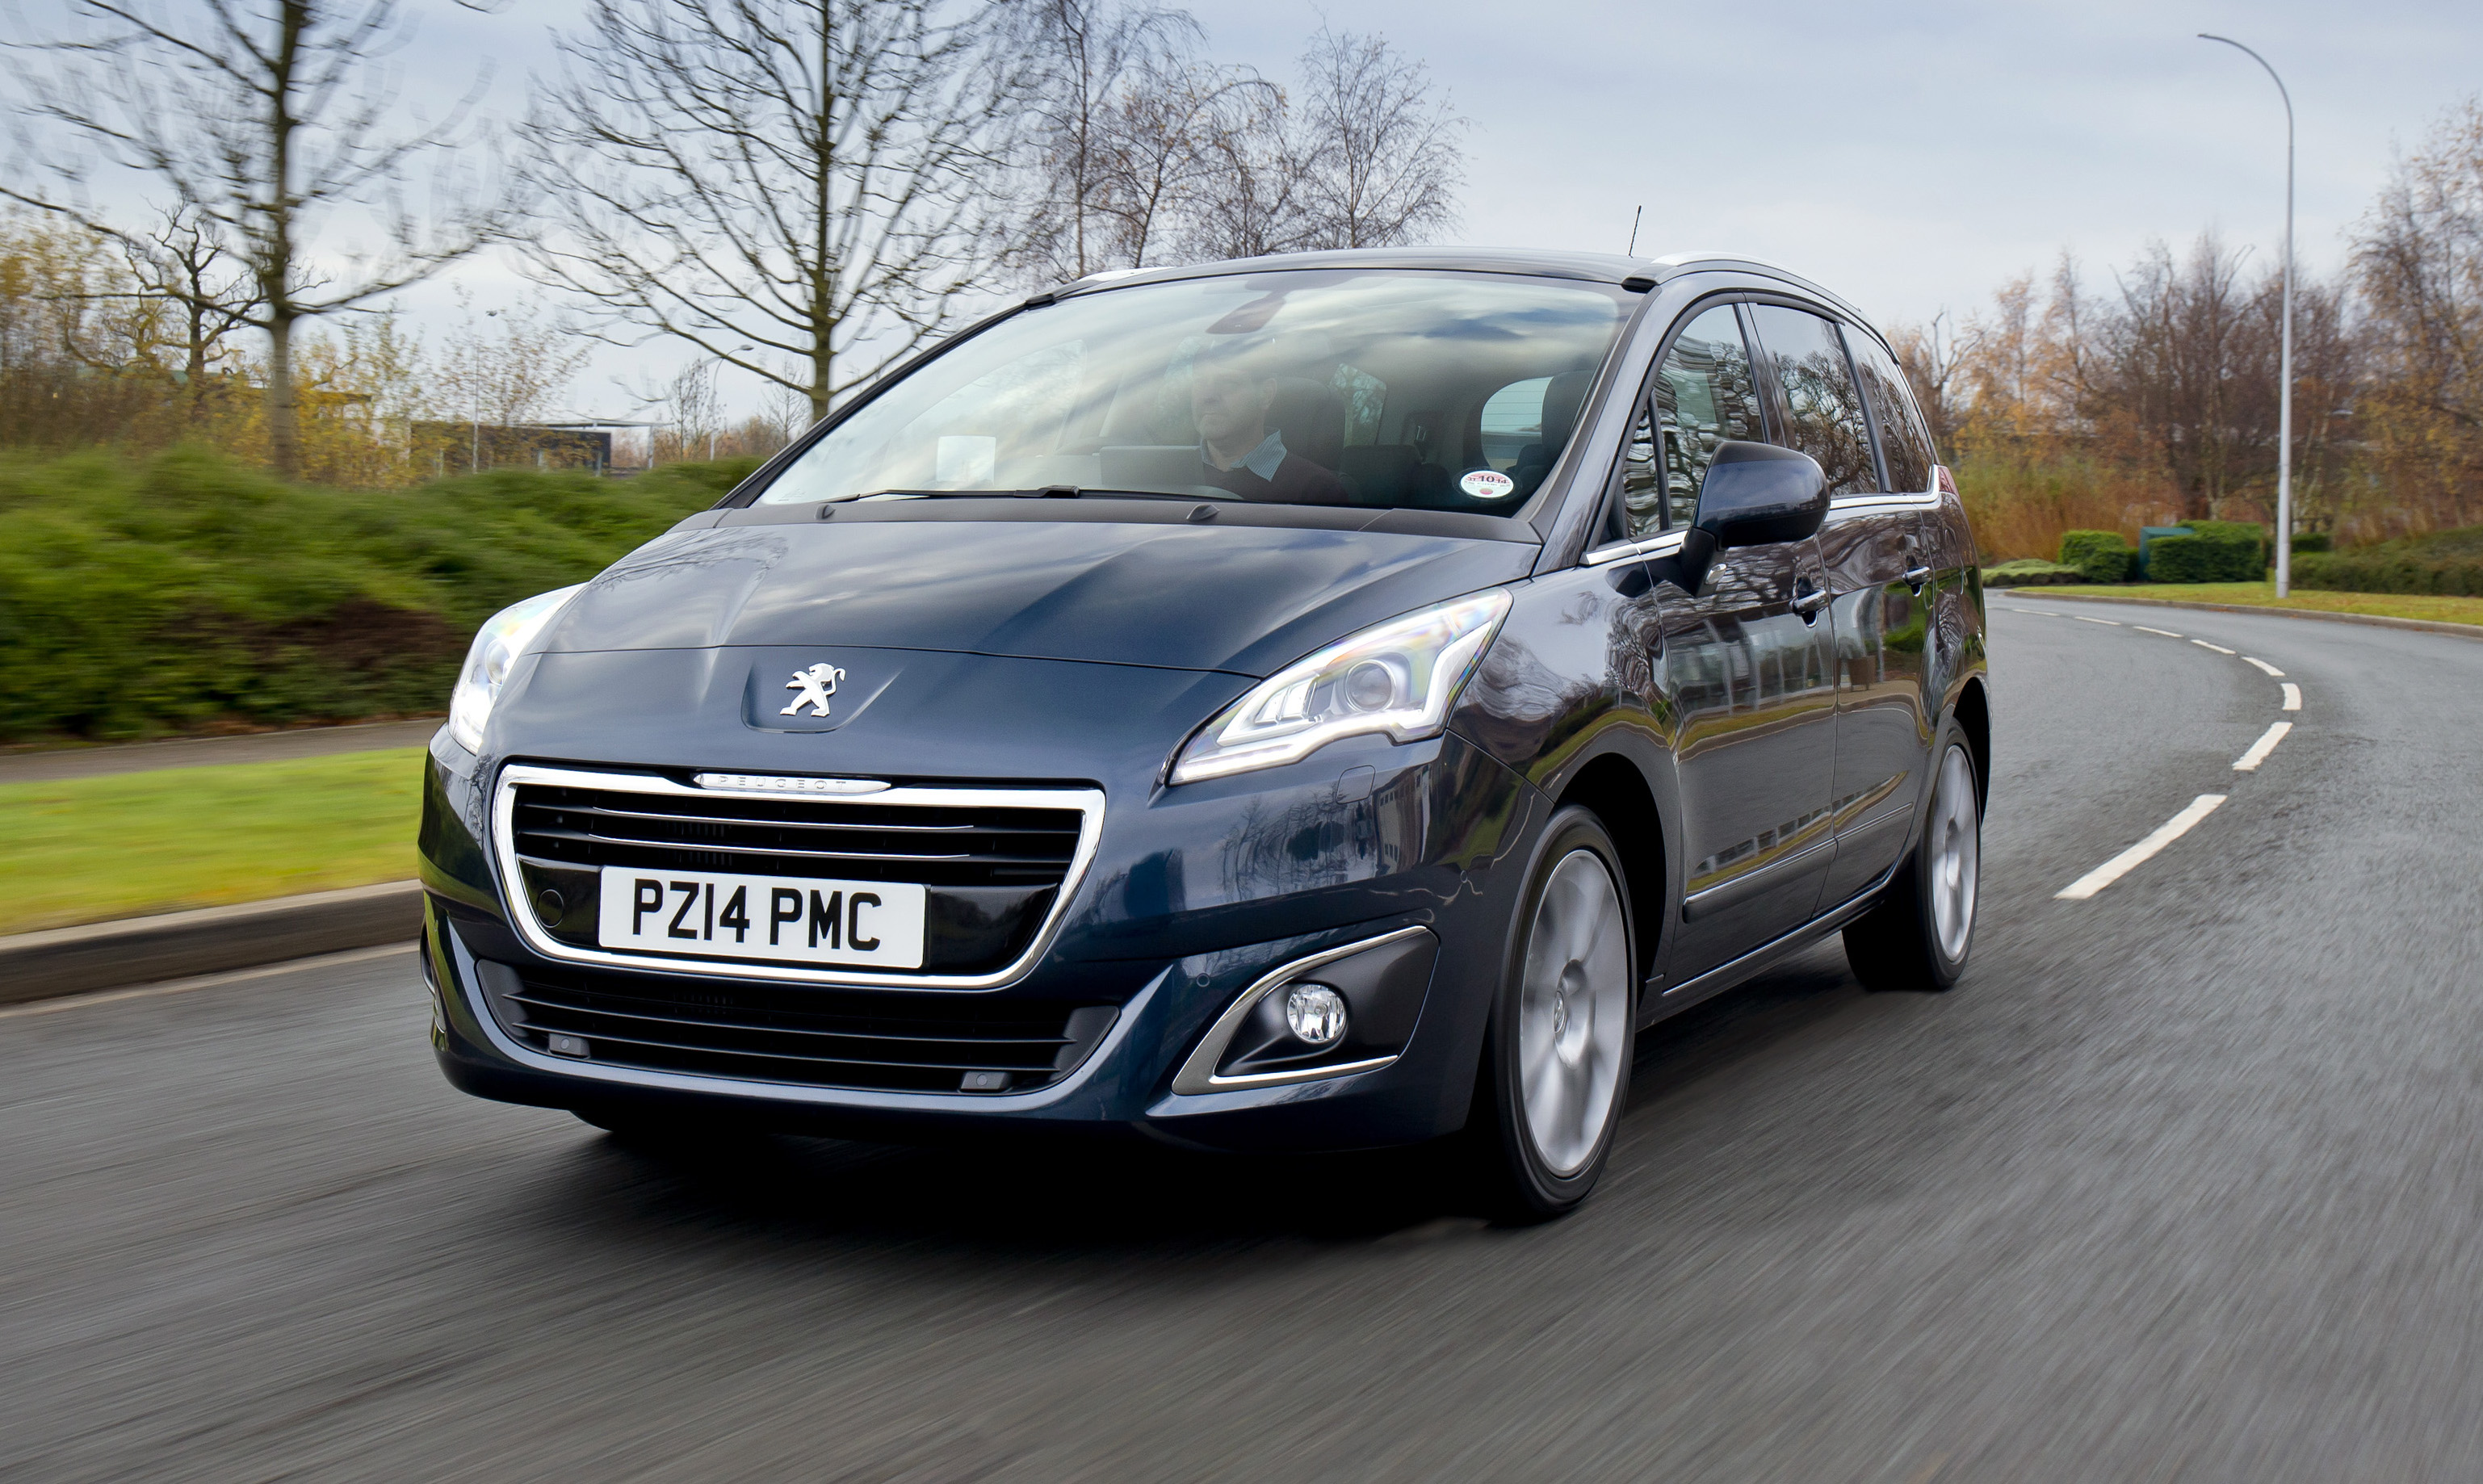 peugeot 5008 facelift   new photos and details